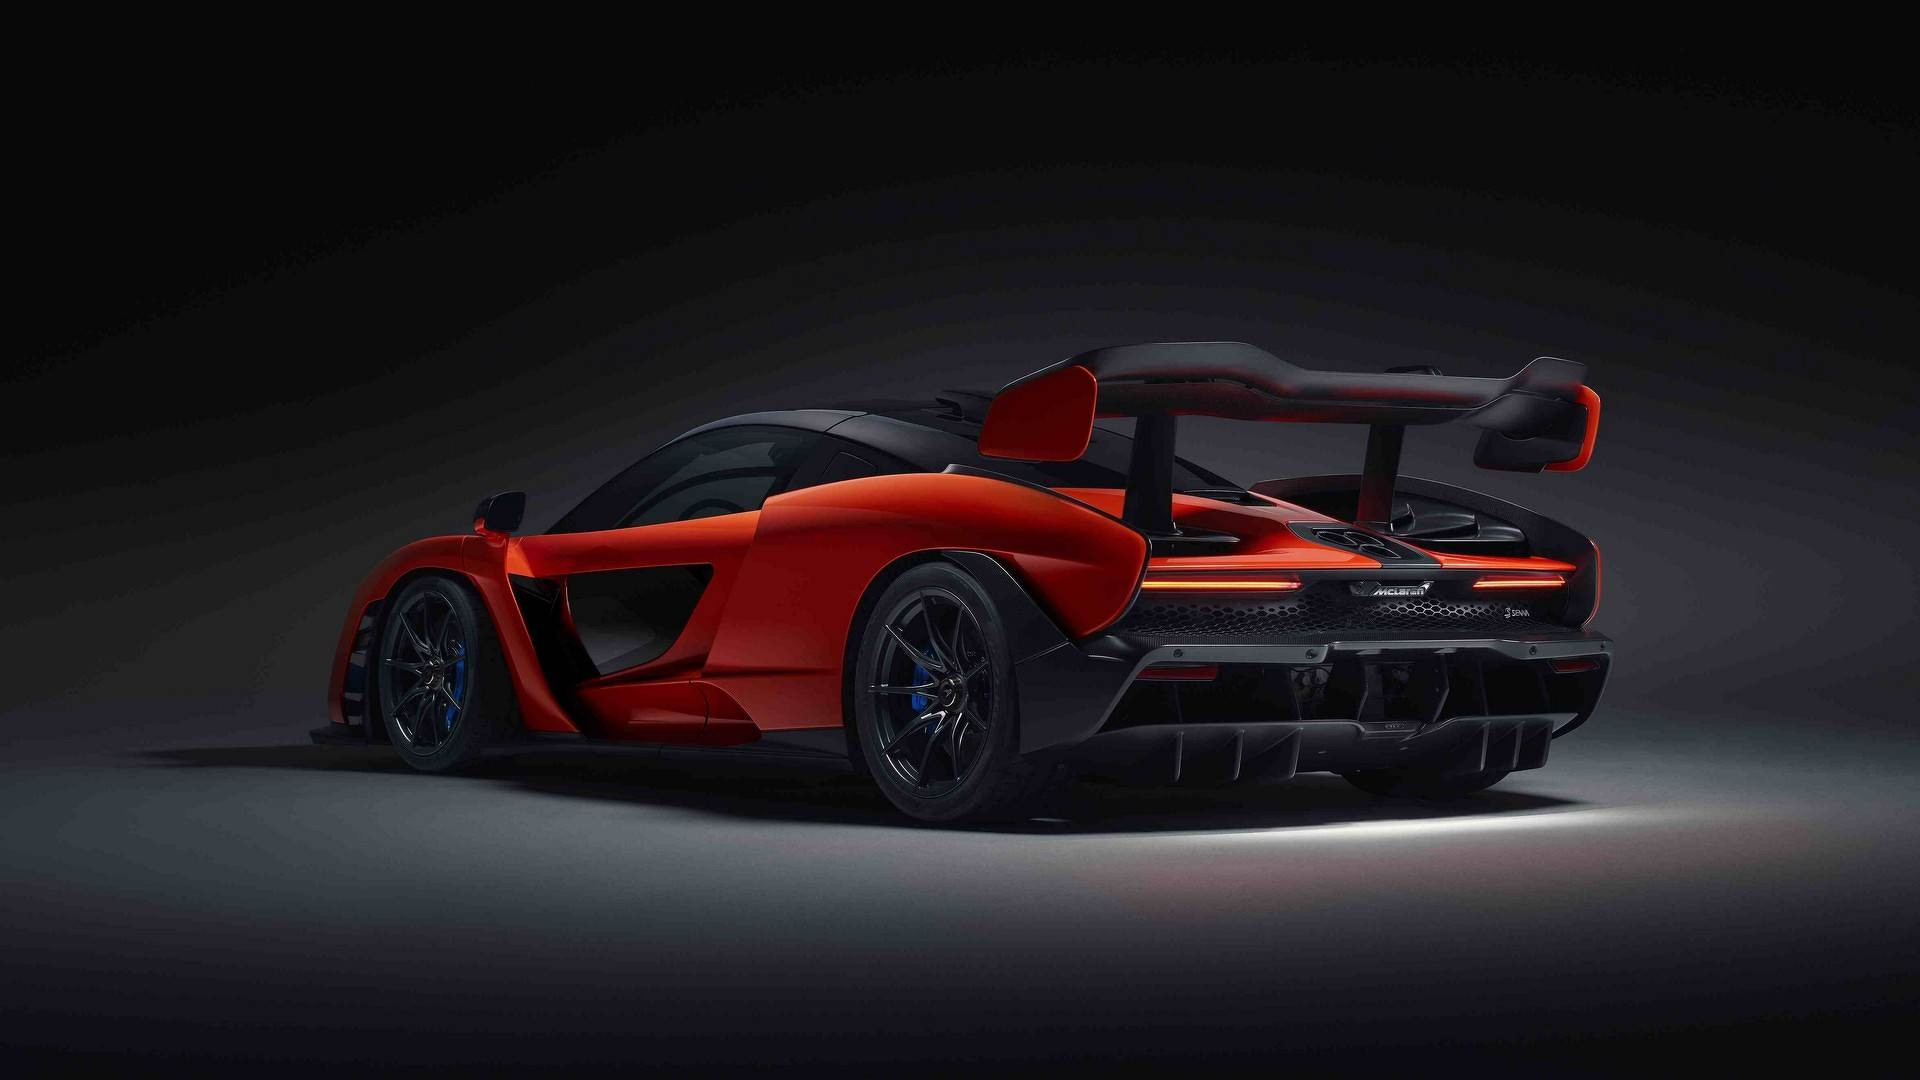 Mclaren Senna With Ayrton Livery Seeks Double The Glory